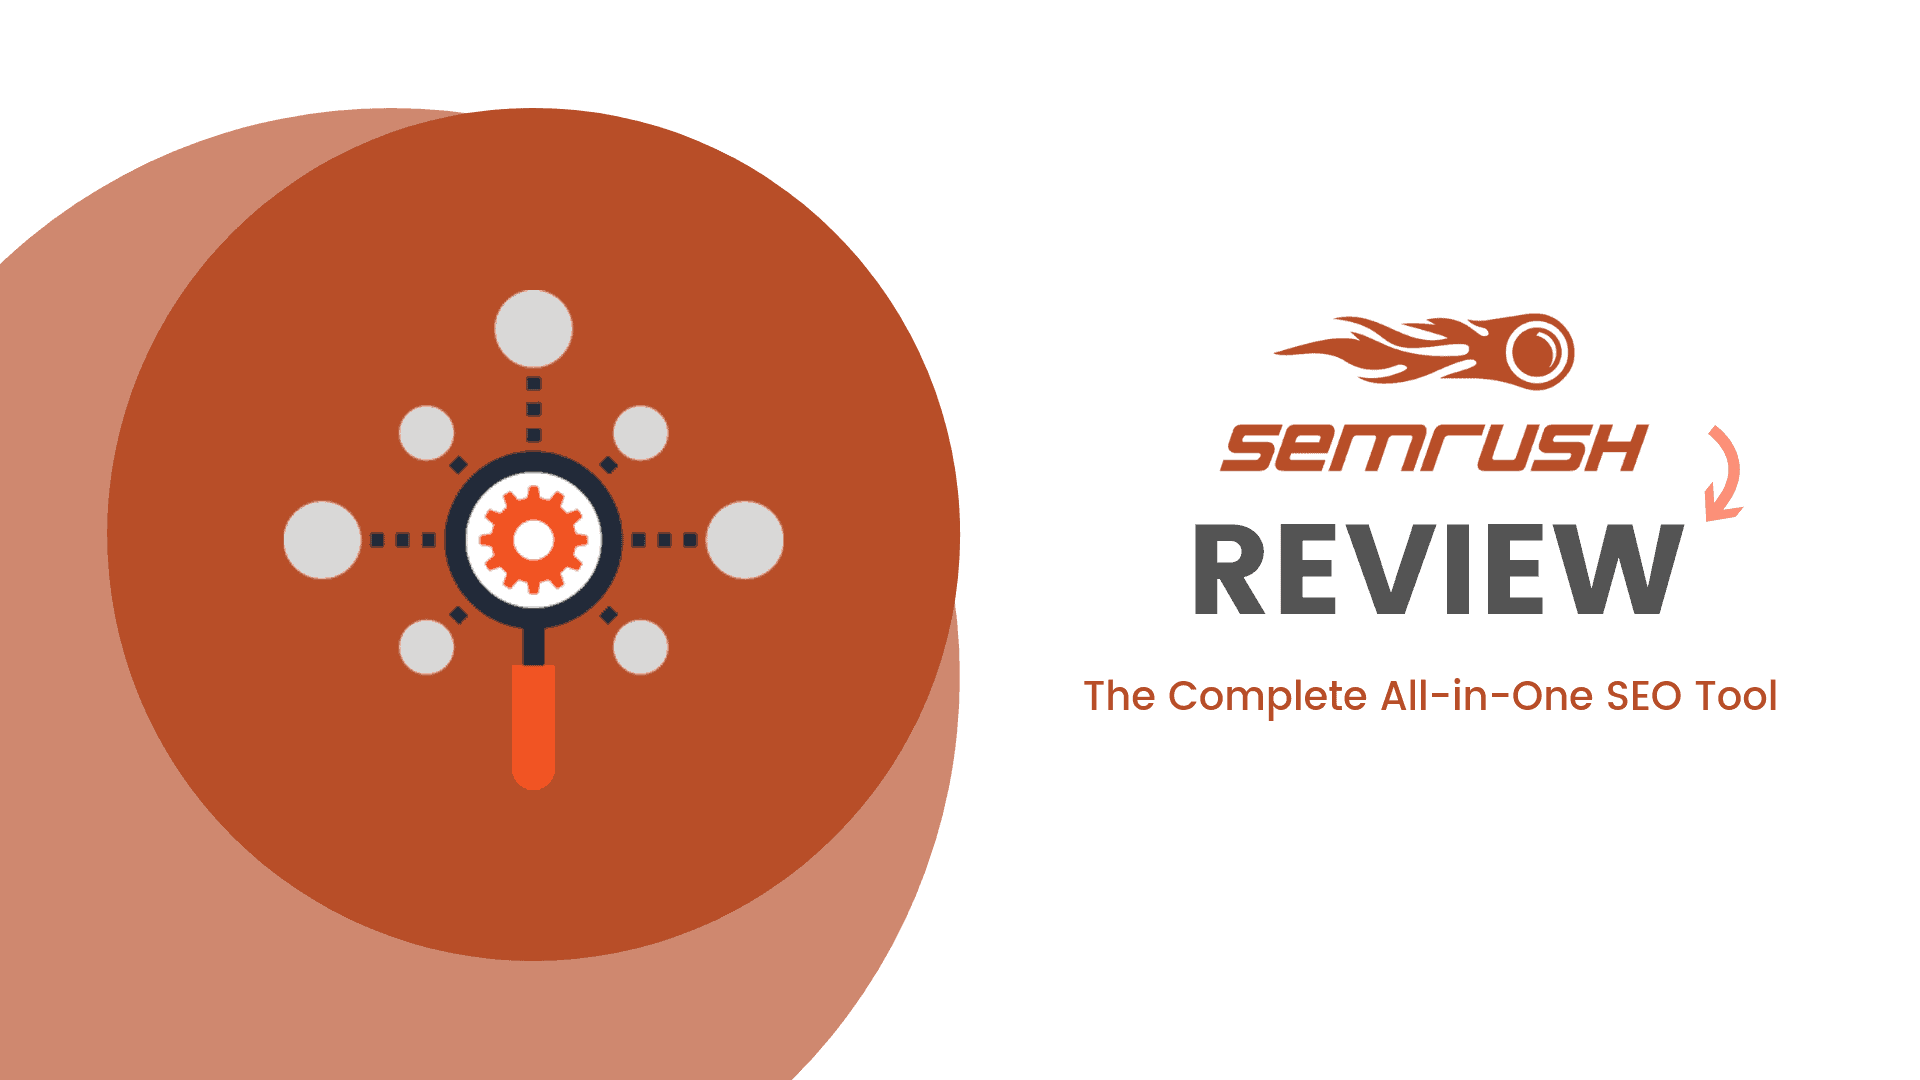 20 Percent Off Coupon Semrush April 2020